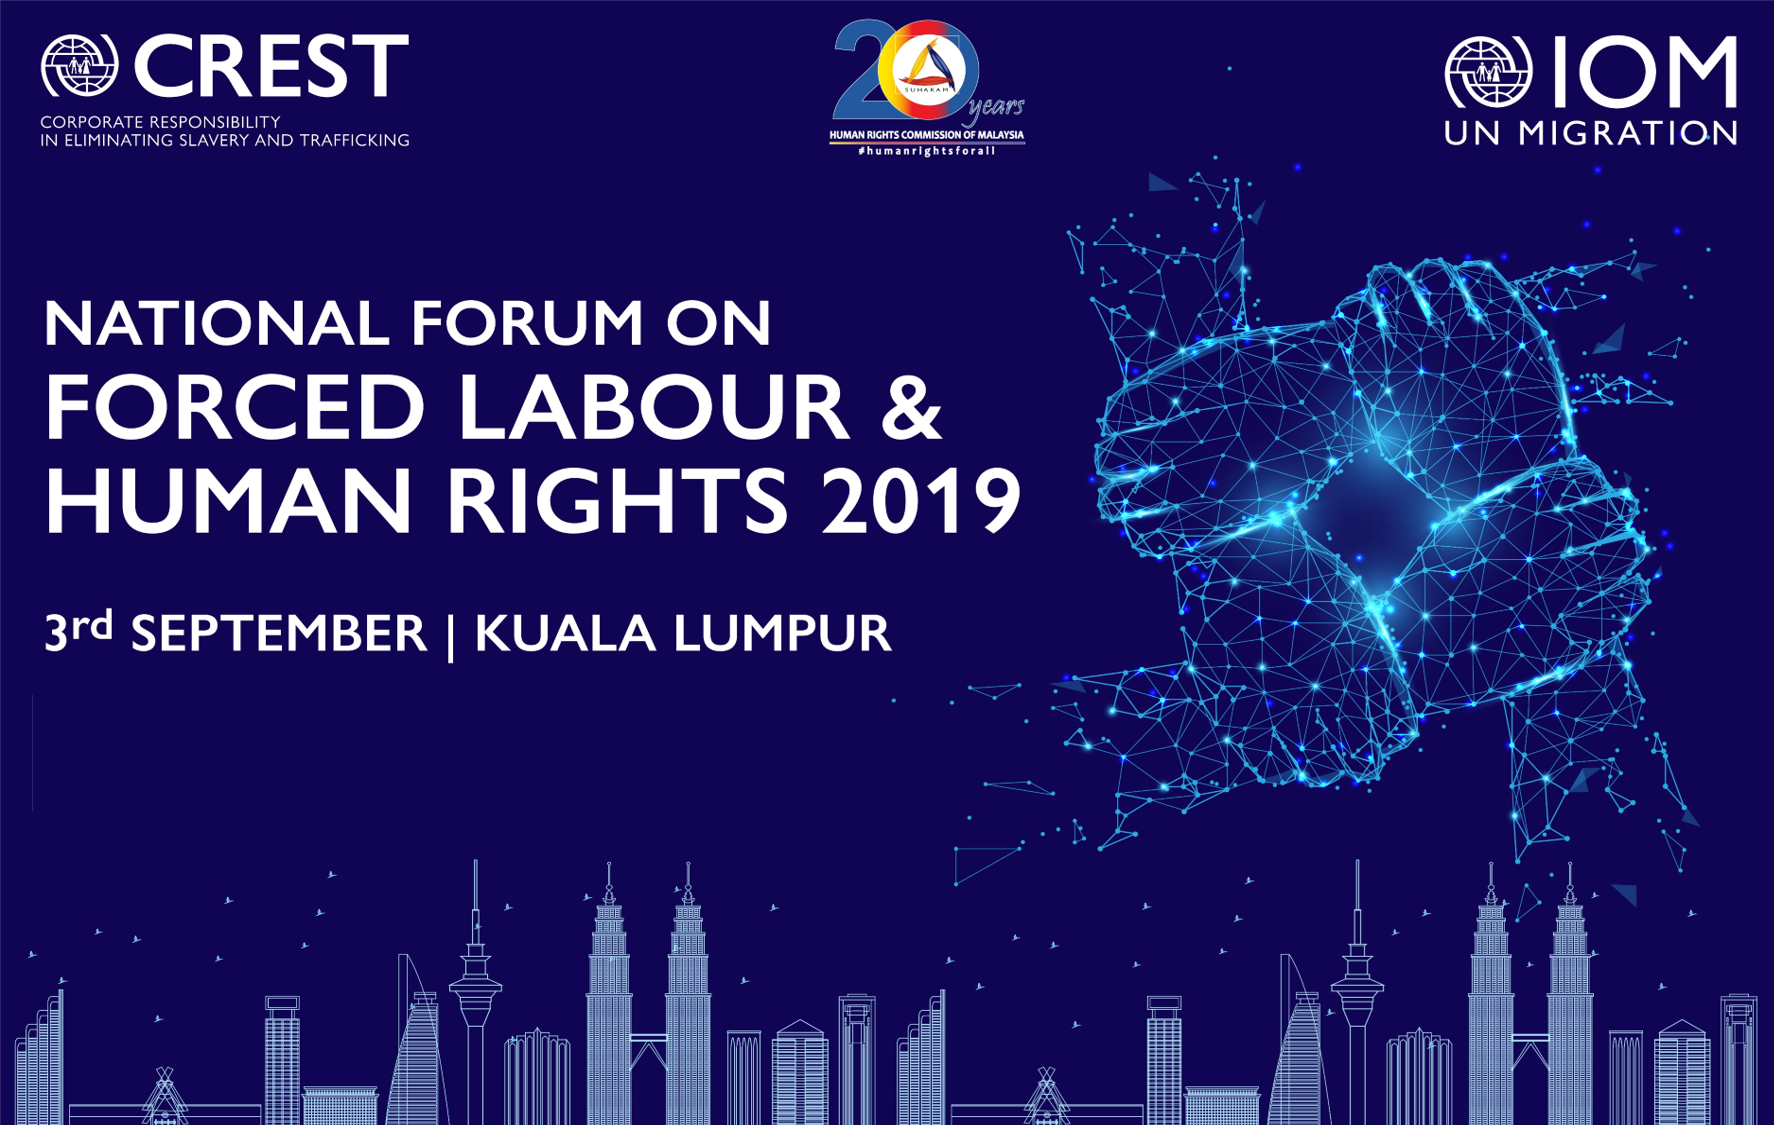 National Forum Addresses Forced Labour and Human Rights in